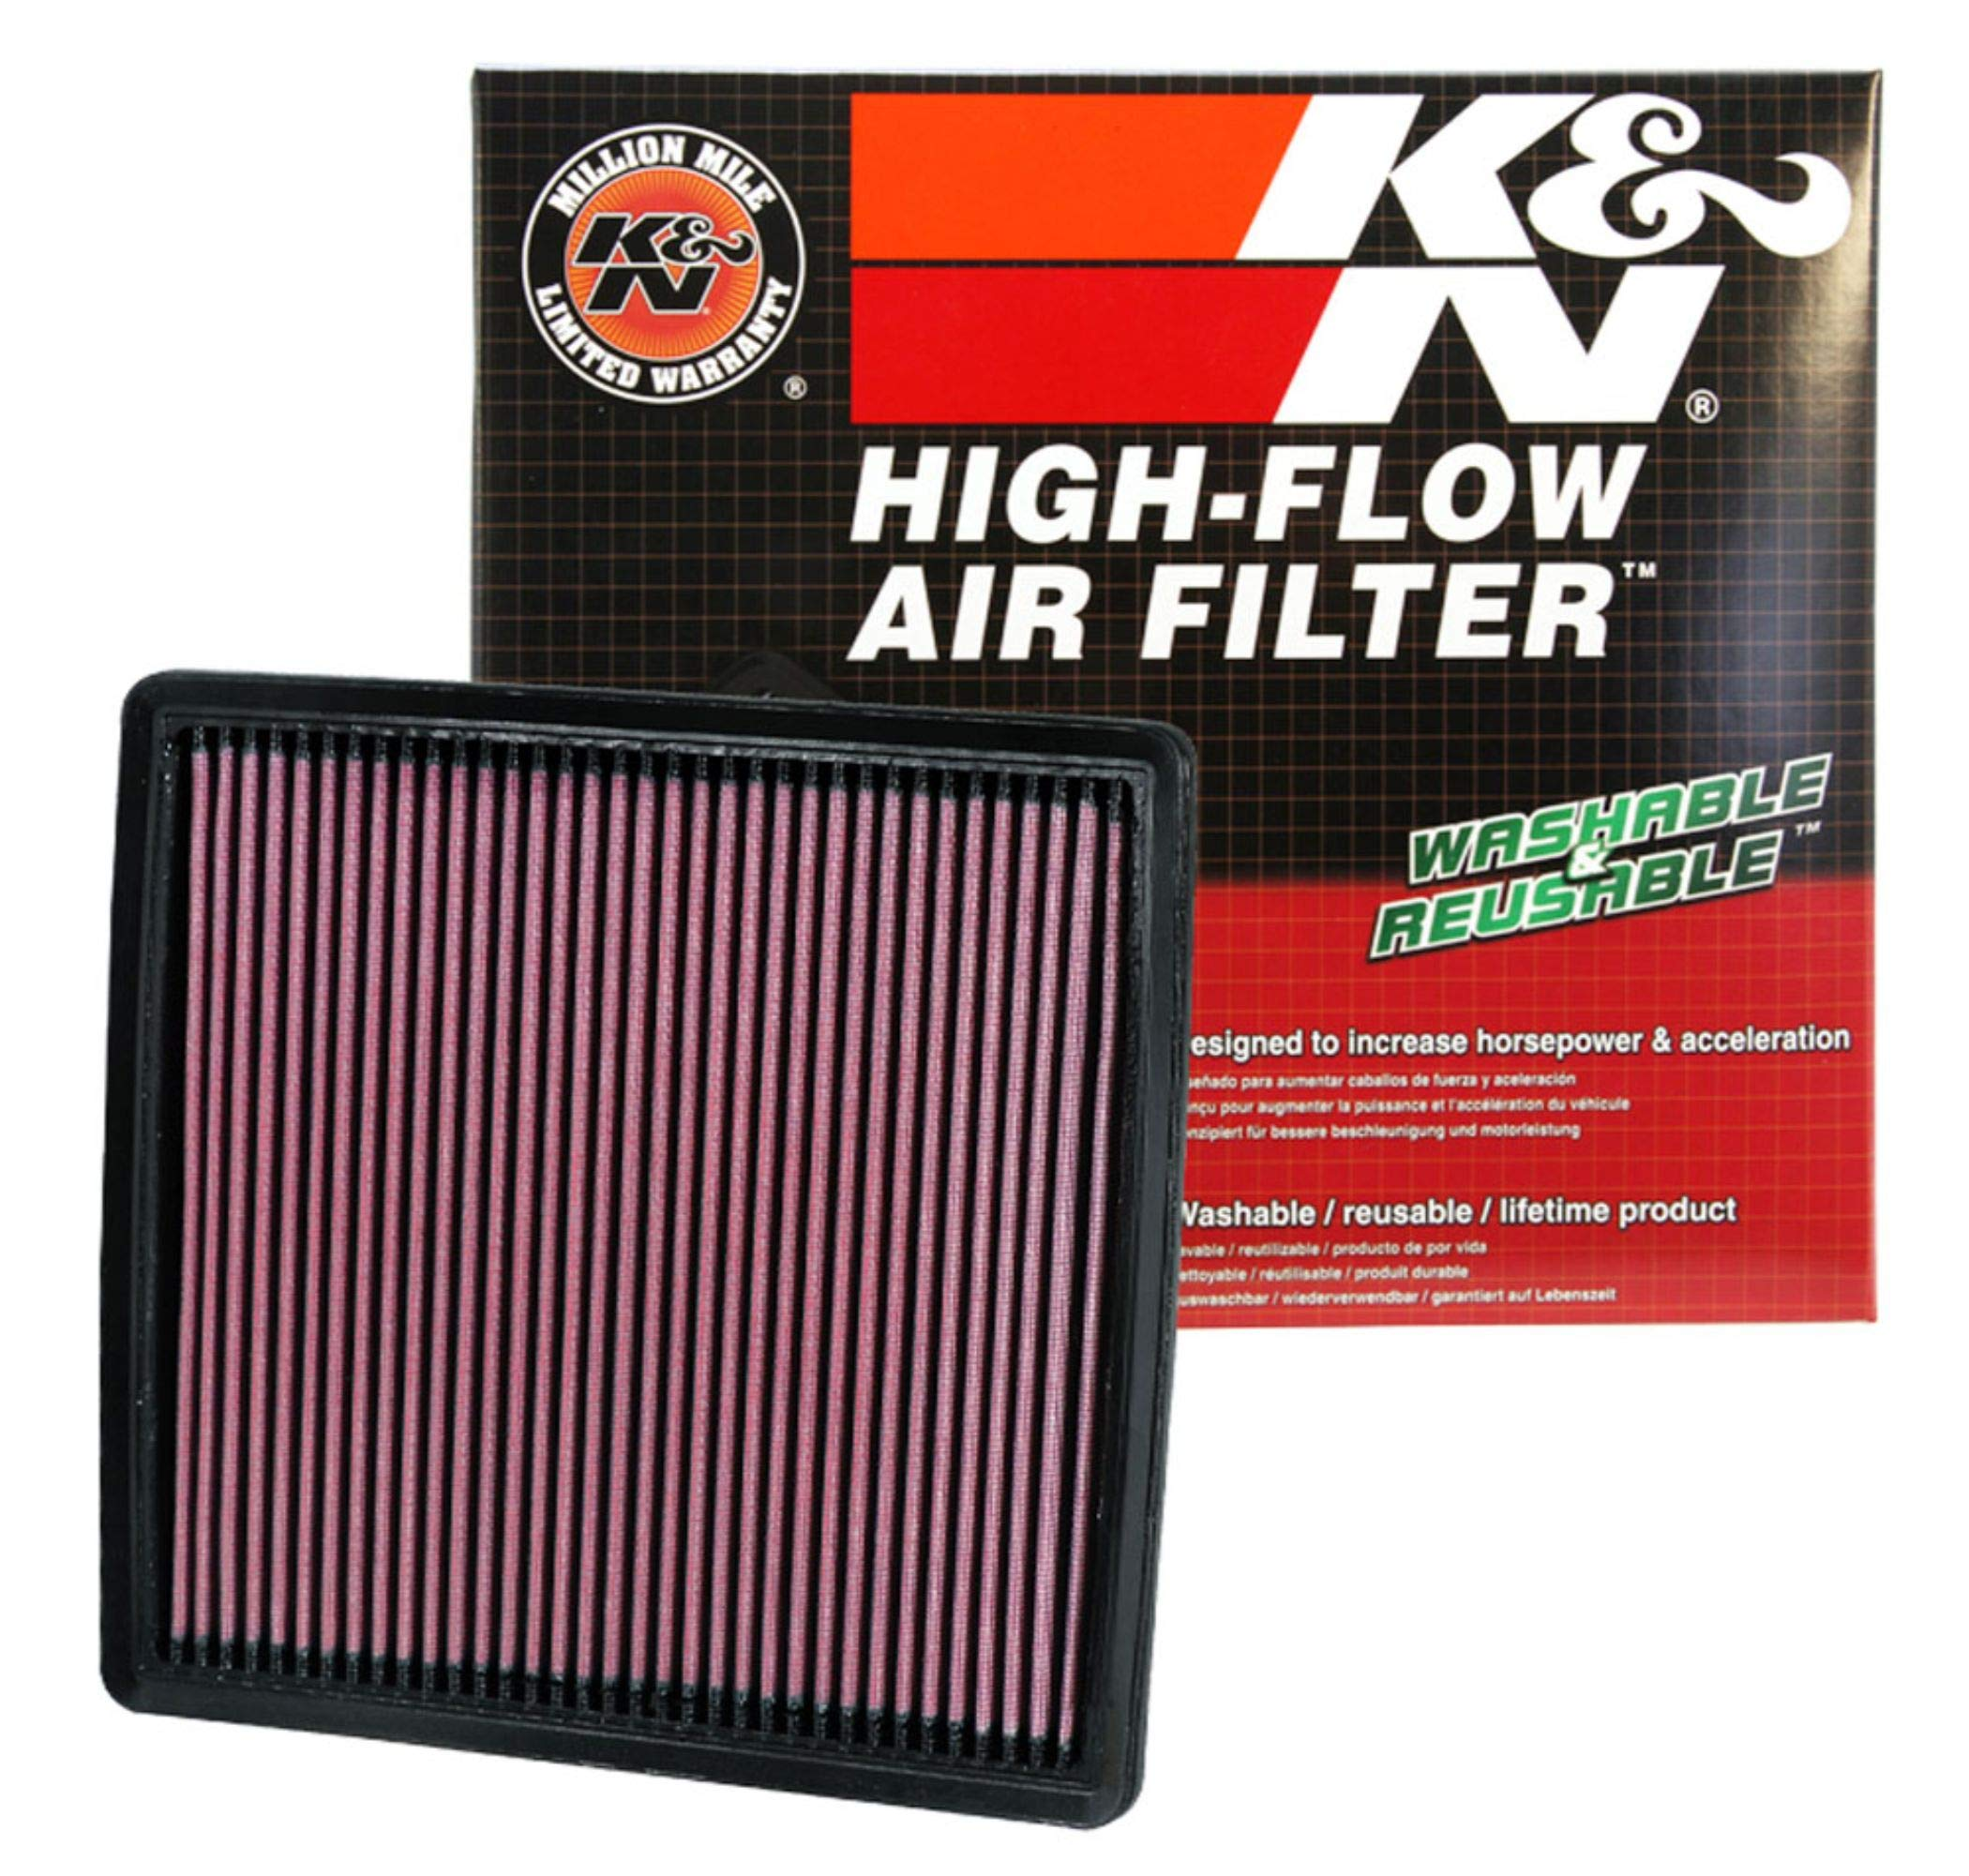 K&N engine air filter, washable and reusable:  2007-2019 Ford/Lincoln Truck and SUV V6/V8/V10 (F150, F150 Raptor, Expedition, Navigator, F250, F350, F450, F550, F650) 33-2385 by K&N